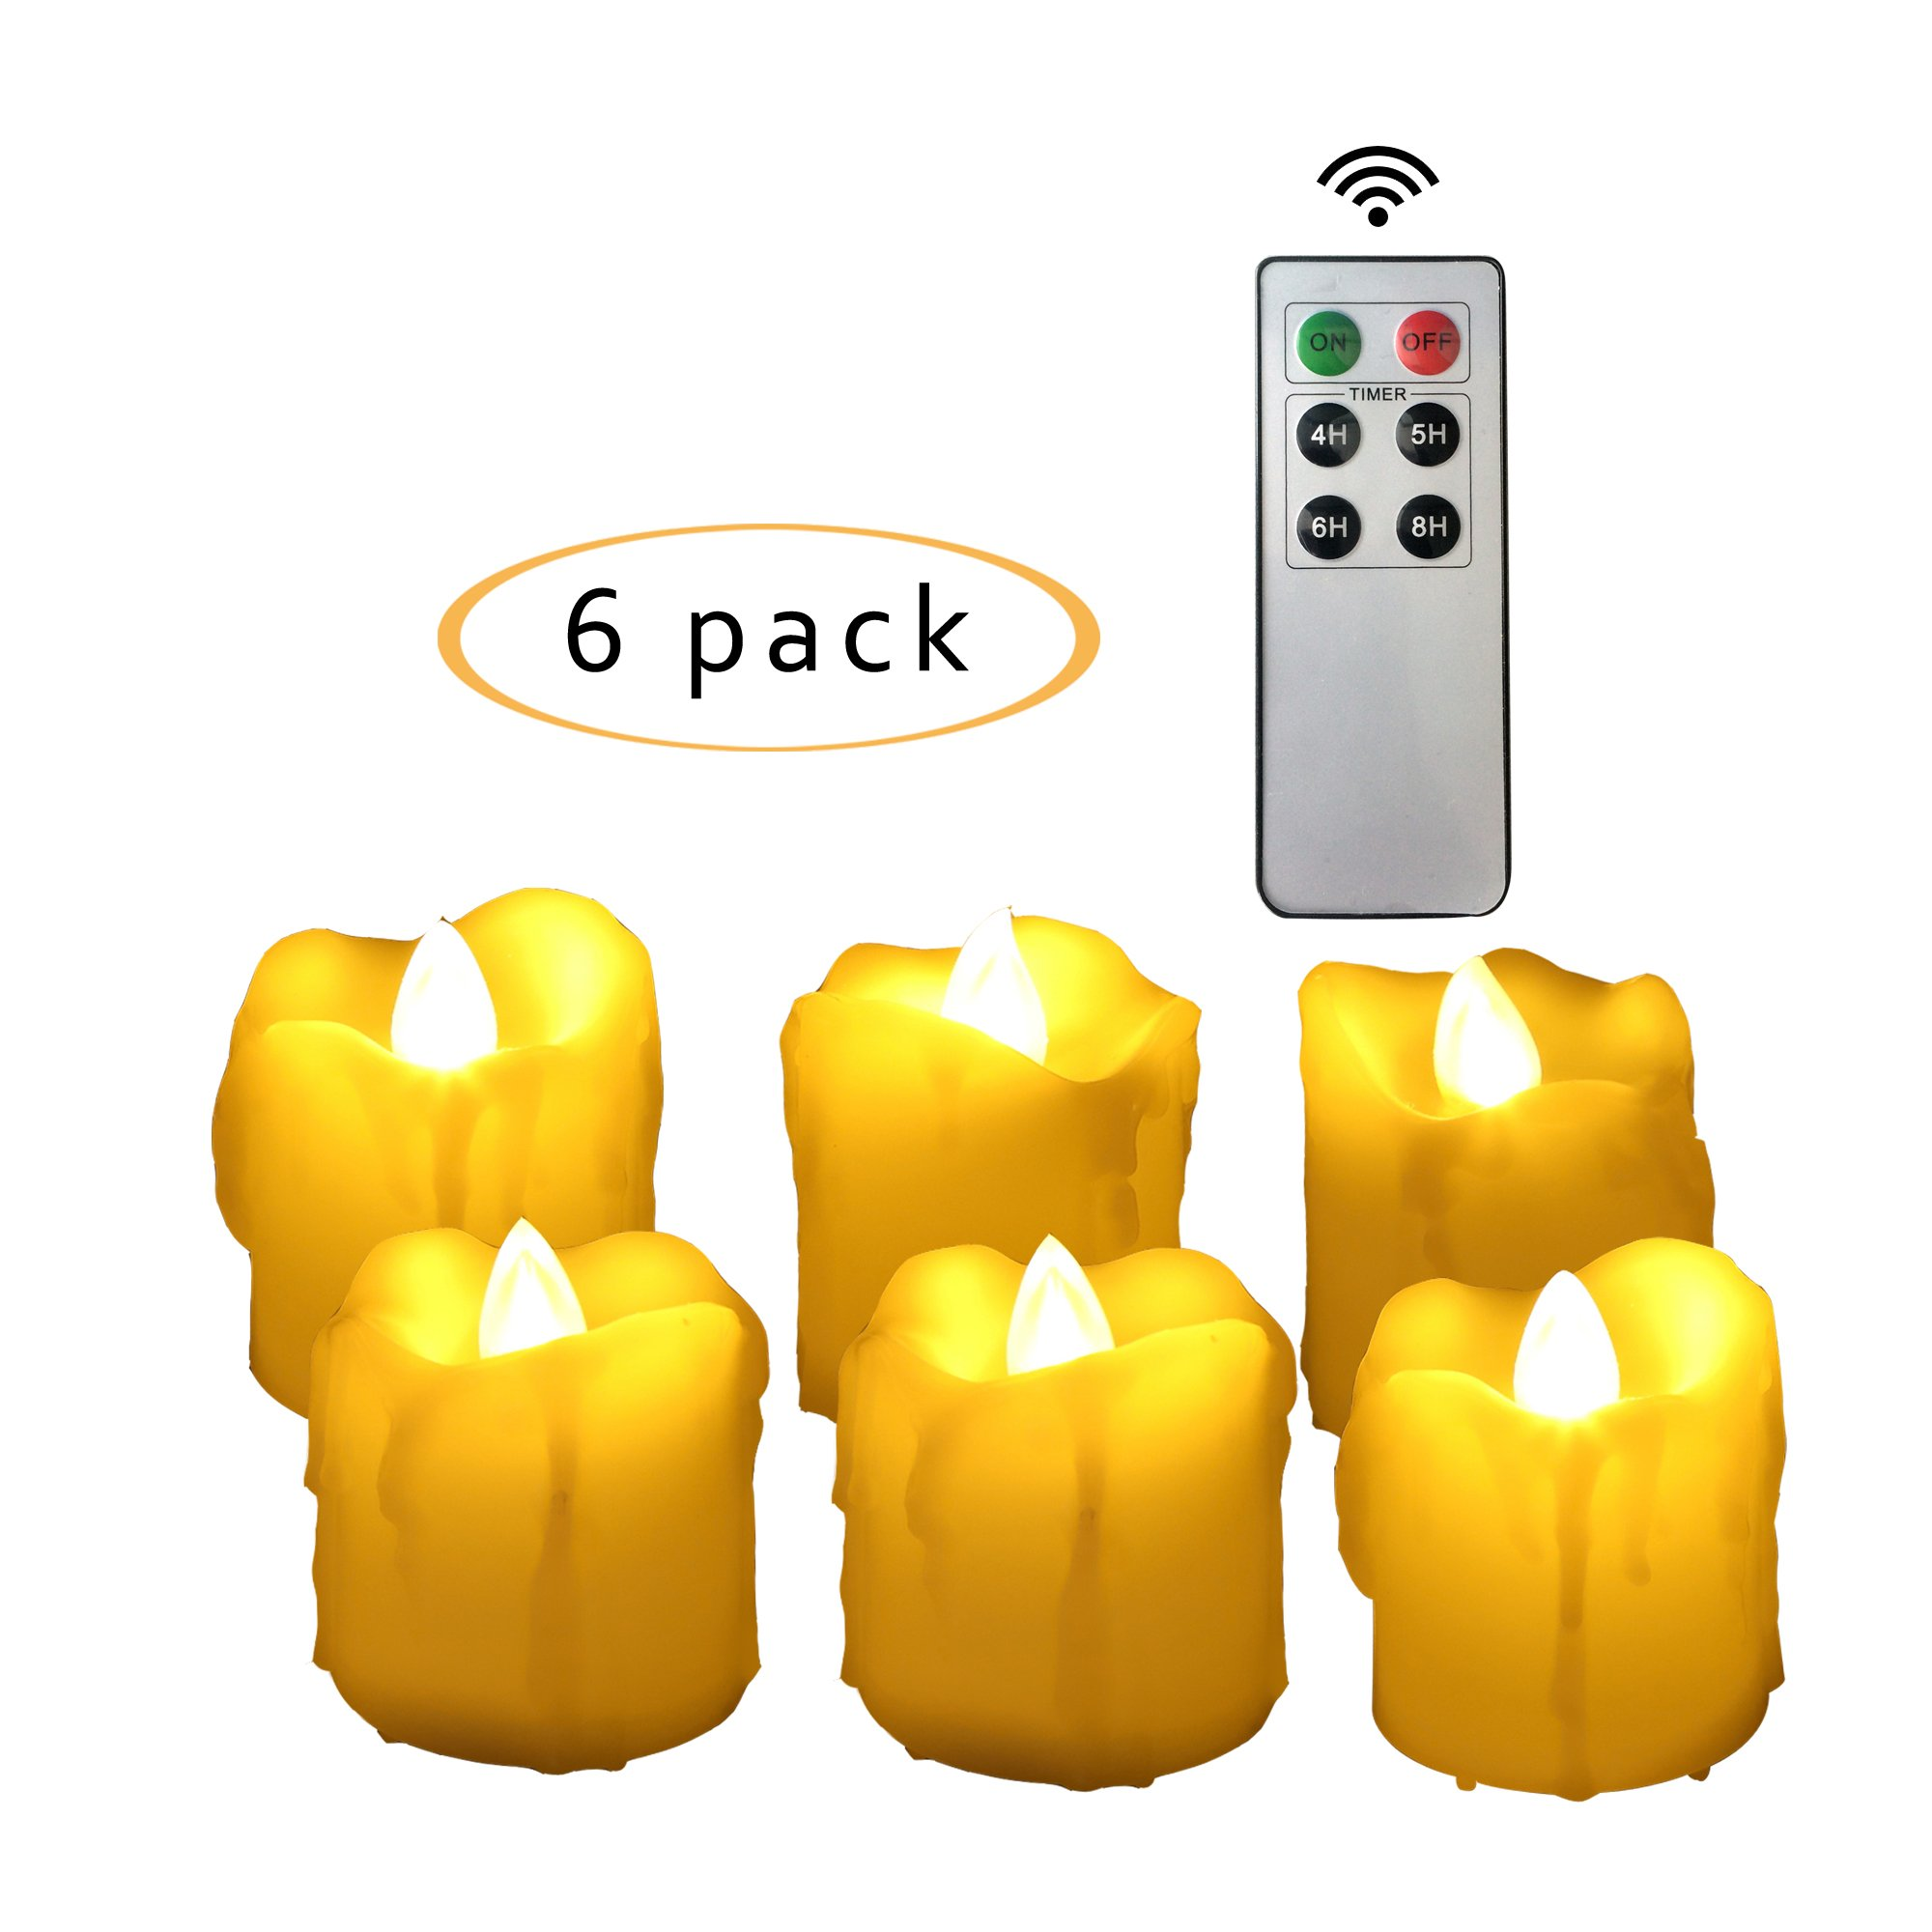 Candle Choice 6 PCS Realistic Flickering Flameless Candles, LED Votives, Battery-operated Tea Lights with Remote and Timer, Long Lasting, 1.5''x2'', Drips